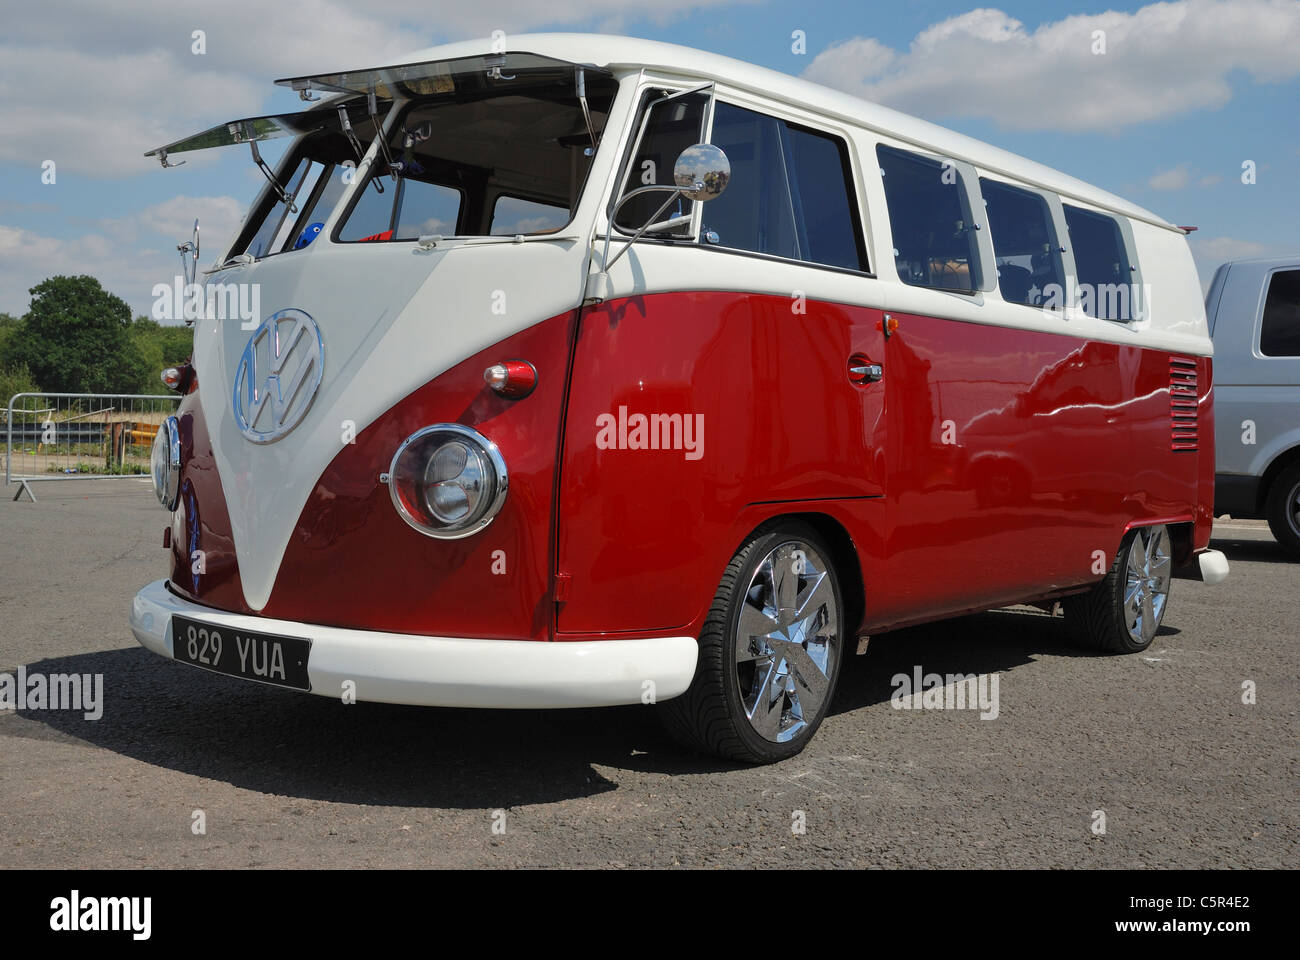 A split screen VW van. Santa Pod, Northants, England. - Stock Image